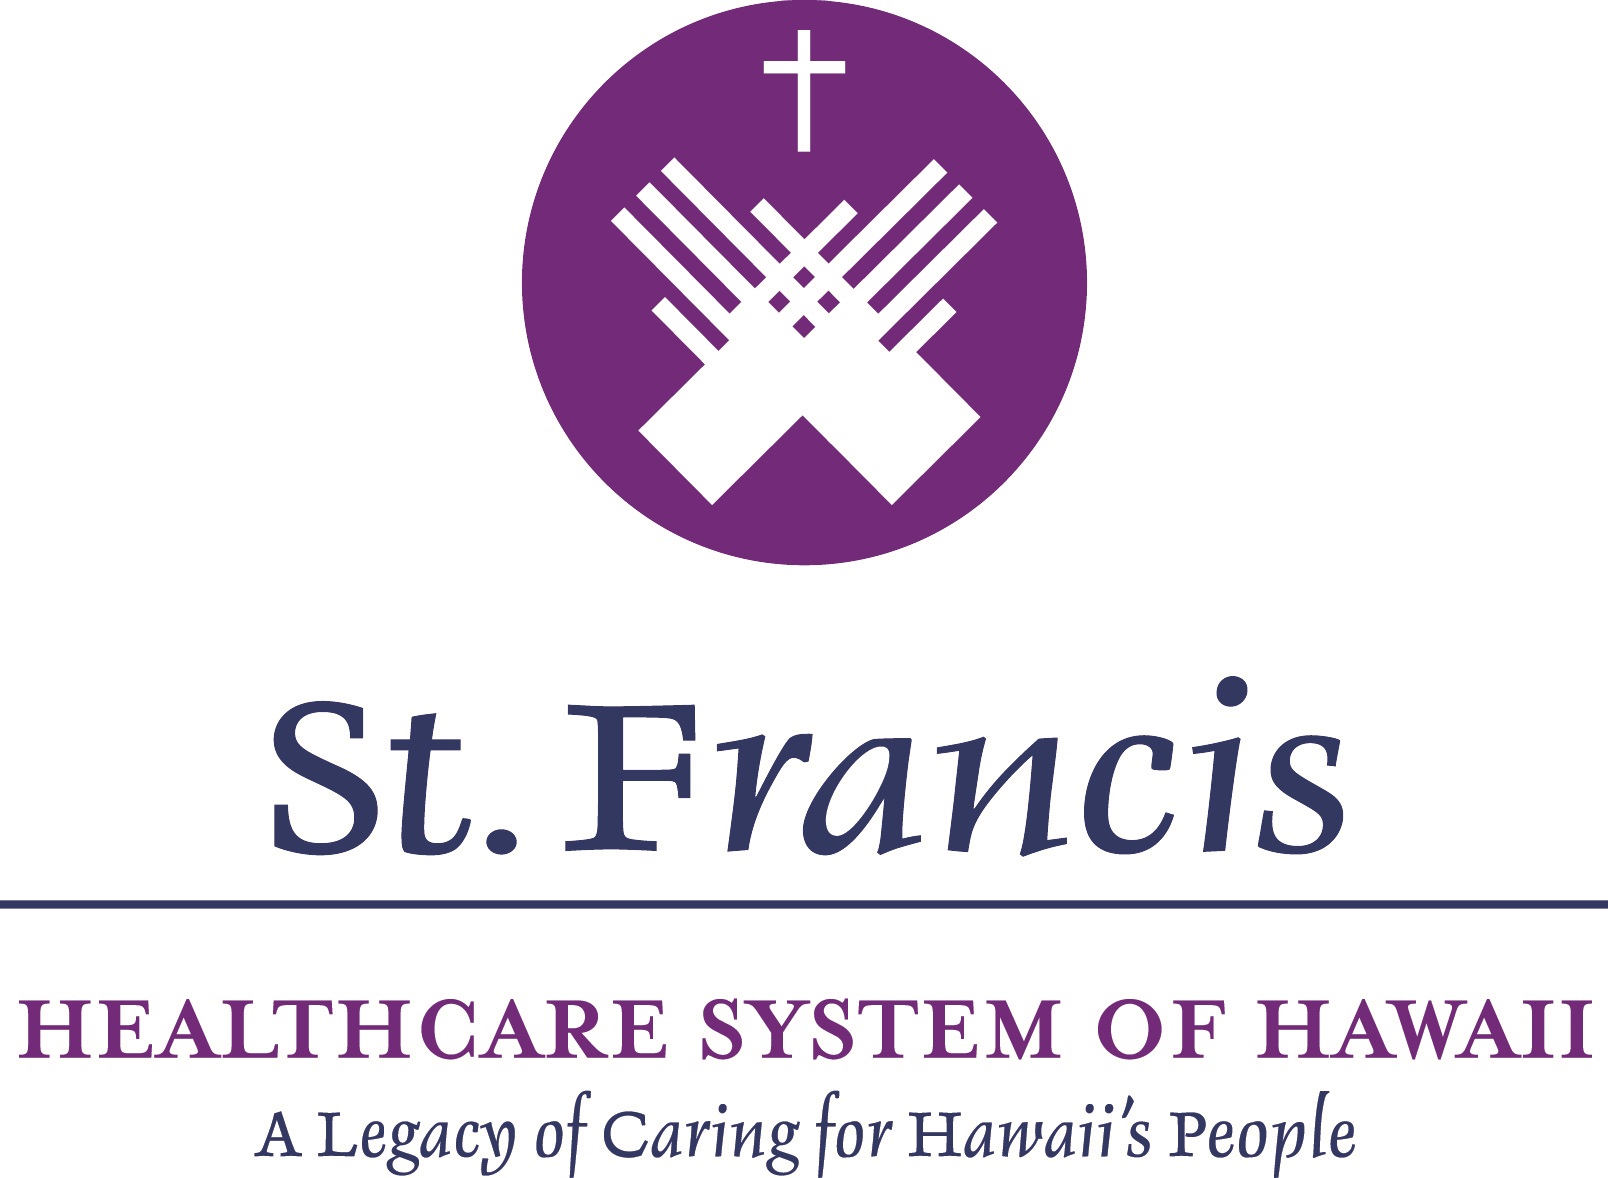 St. Francis Healthcare System of Hawaii (Bronze)